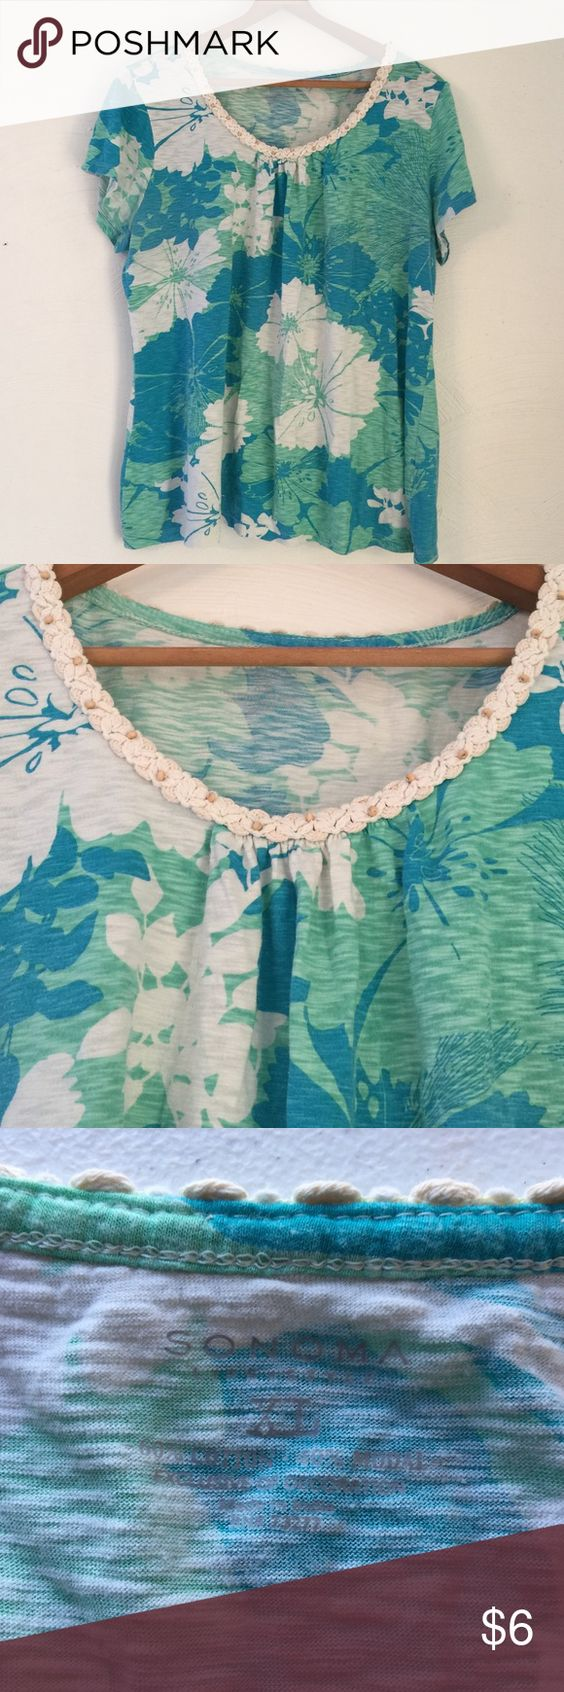 Sonoma, Short Sleeved Top w Macrame Trim on Collar Turquoise/aqua/white flower pattern on this cotton blend shirt. Macrame Beaded trim on collar adds to the beachy appeal. XL Sonoma Tops Tees - Short Sleeve